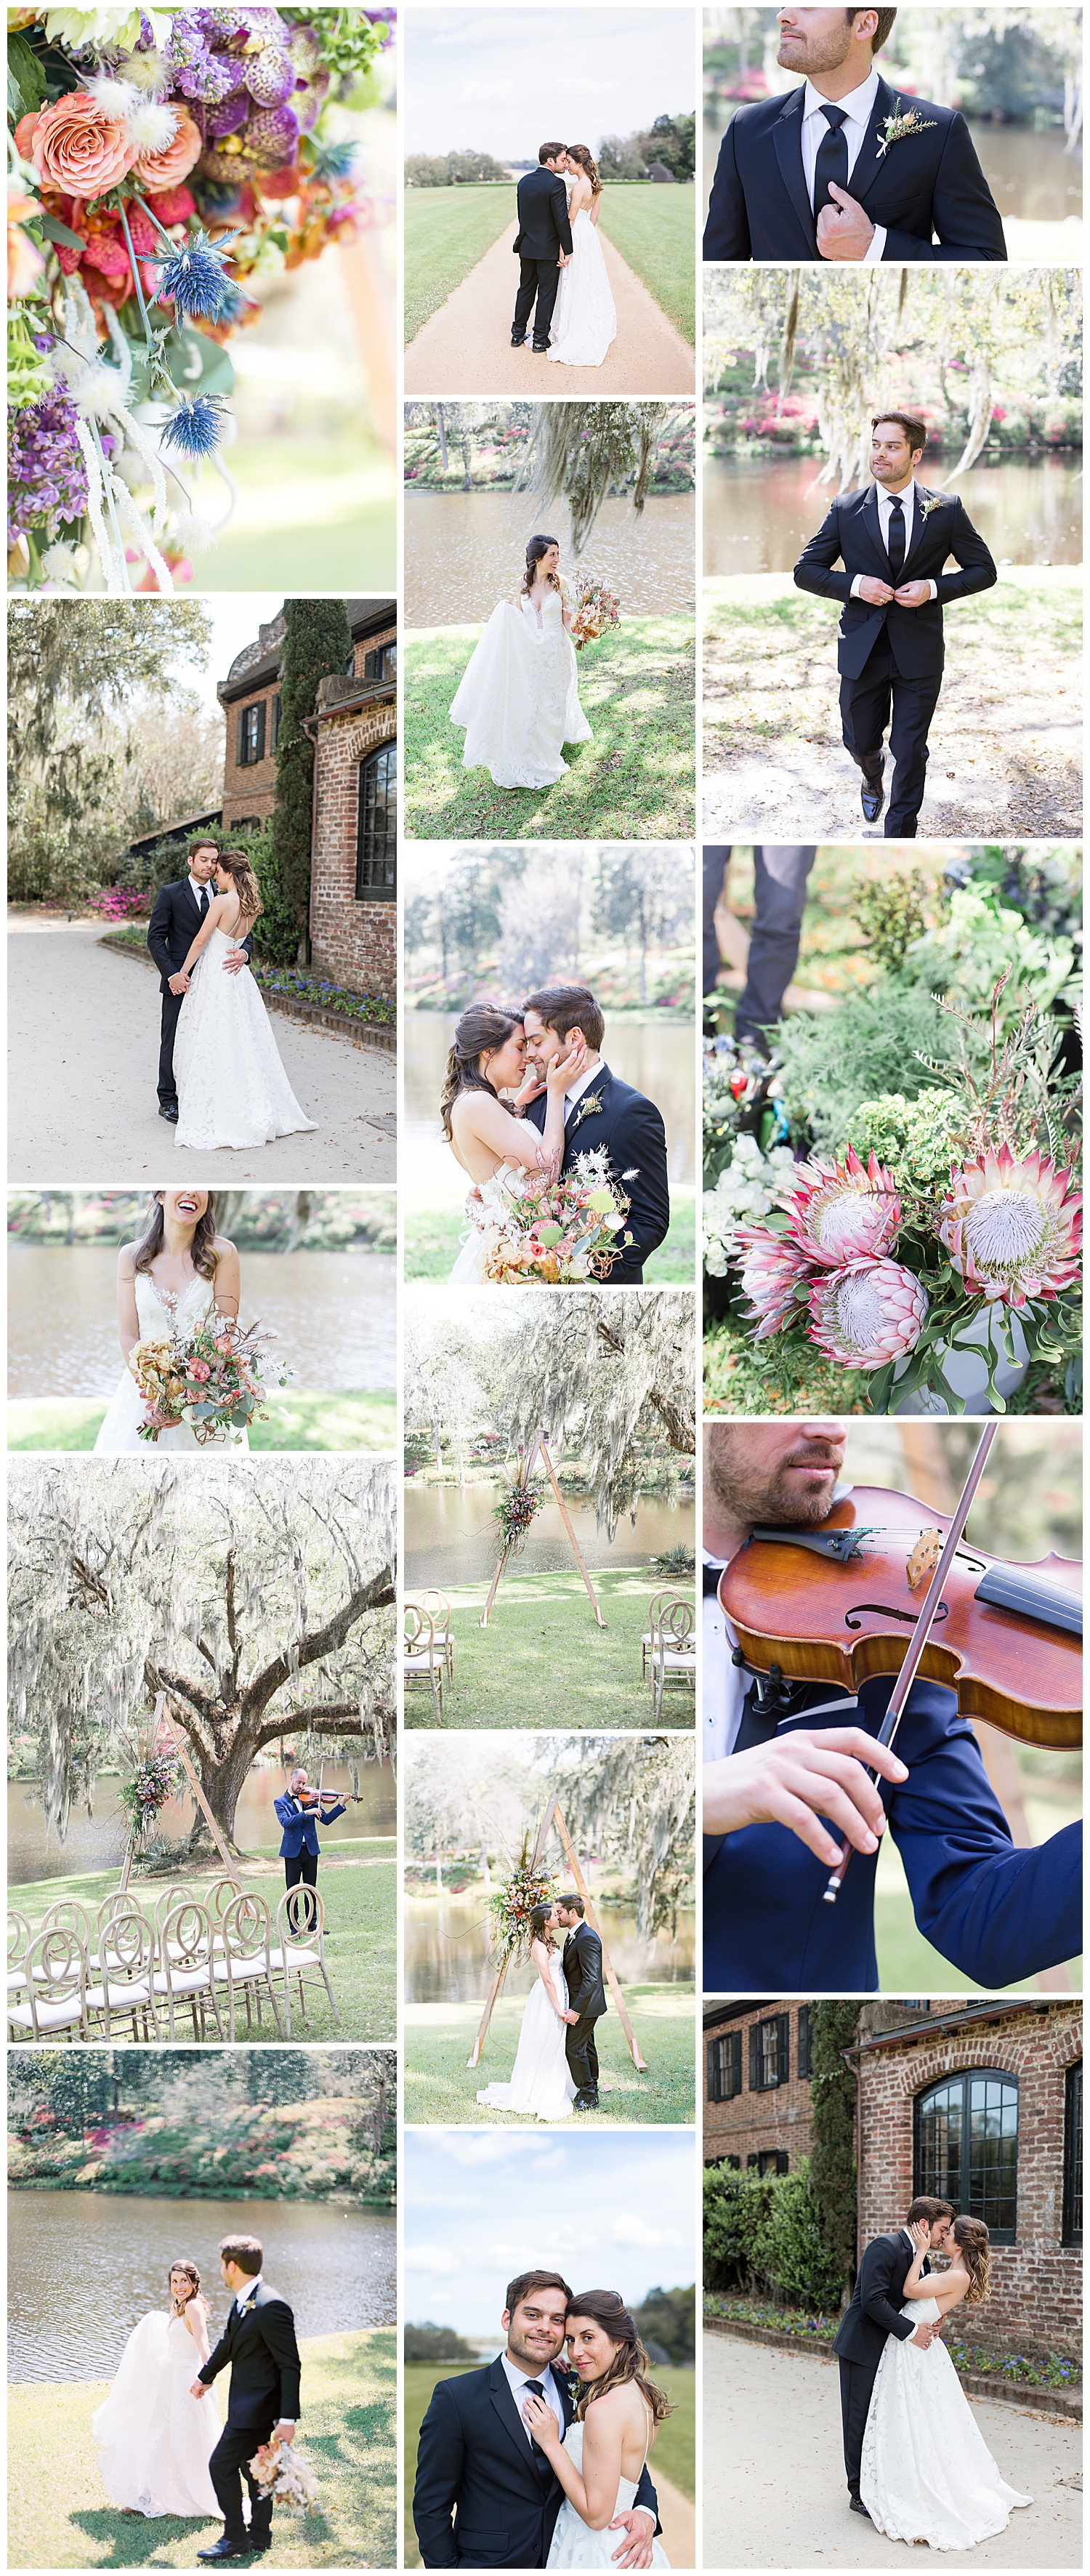 Middleton-Place-Whimsical-Colorful-Wedding-outdoor-boho-Ceremony-Kailee-DiMeglio-Photography.jpg